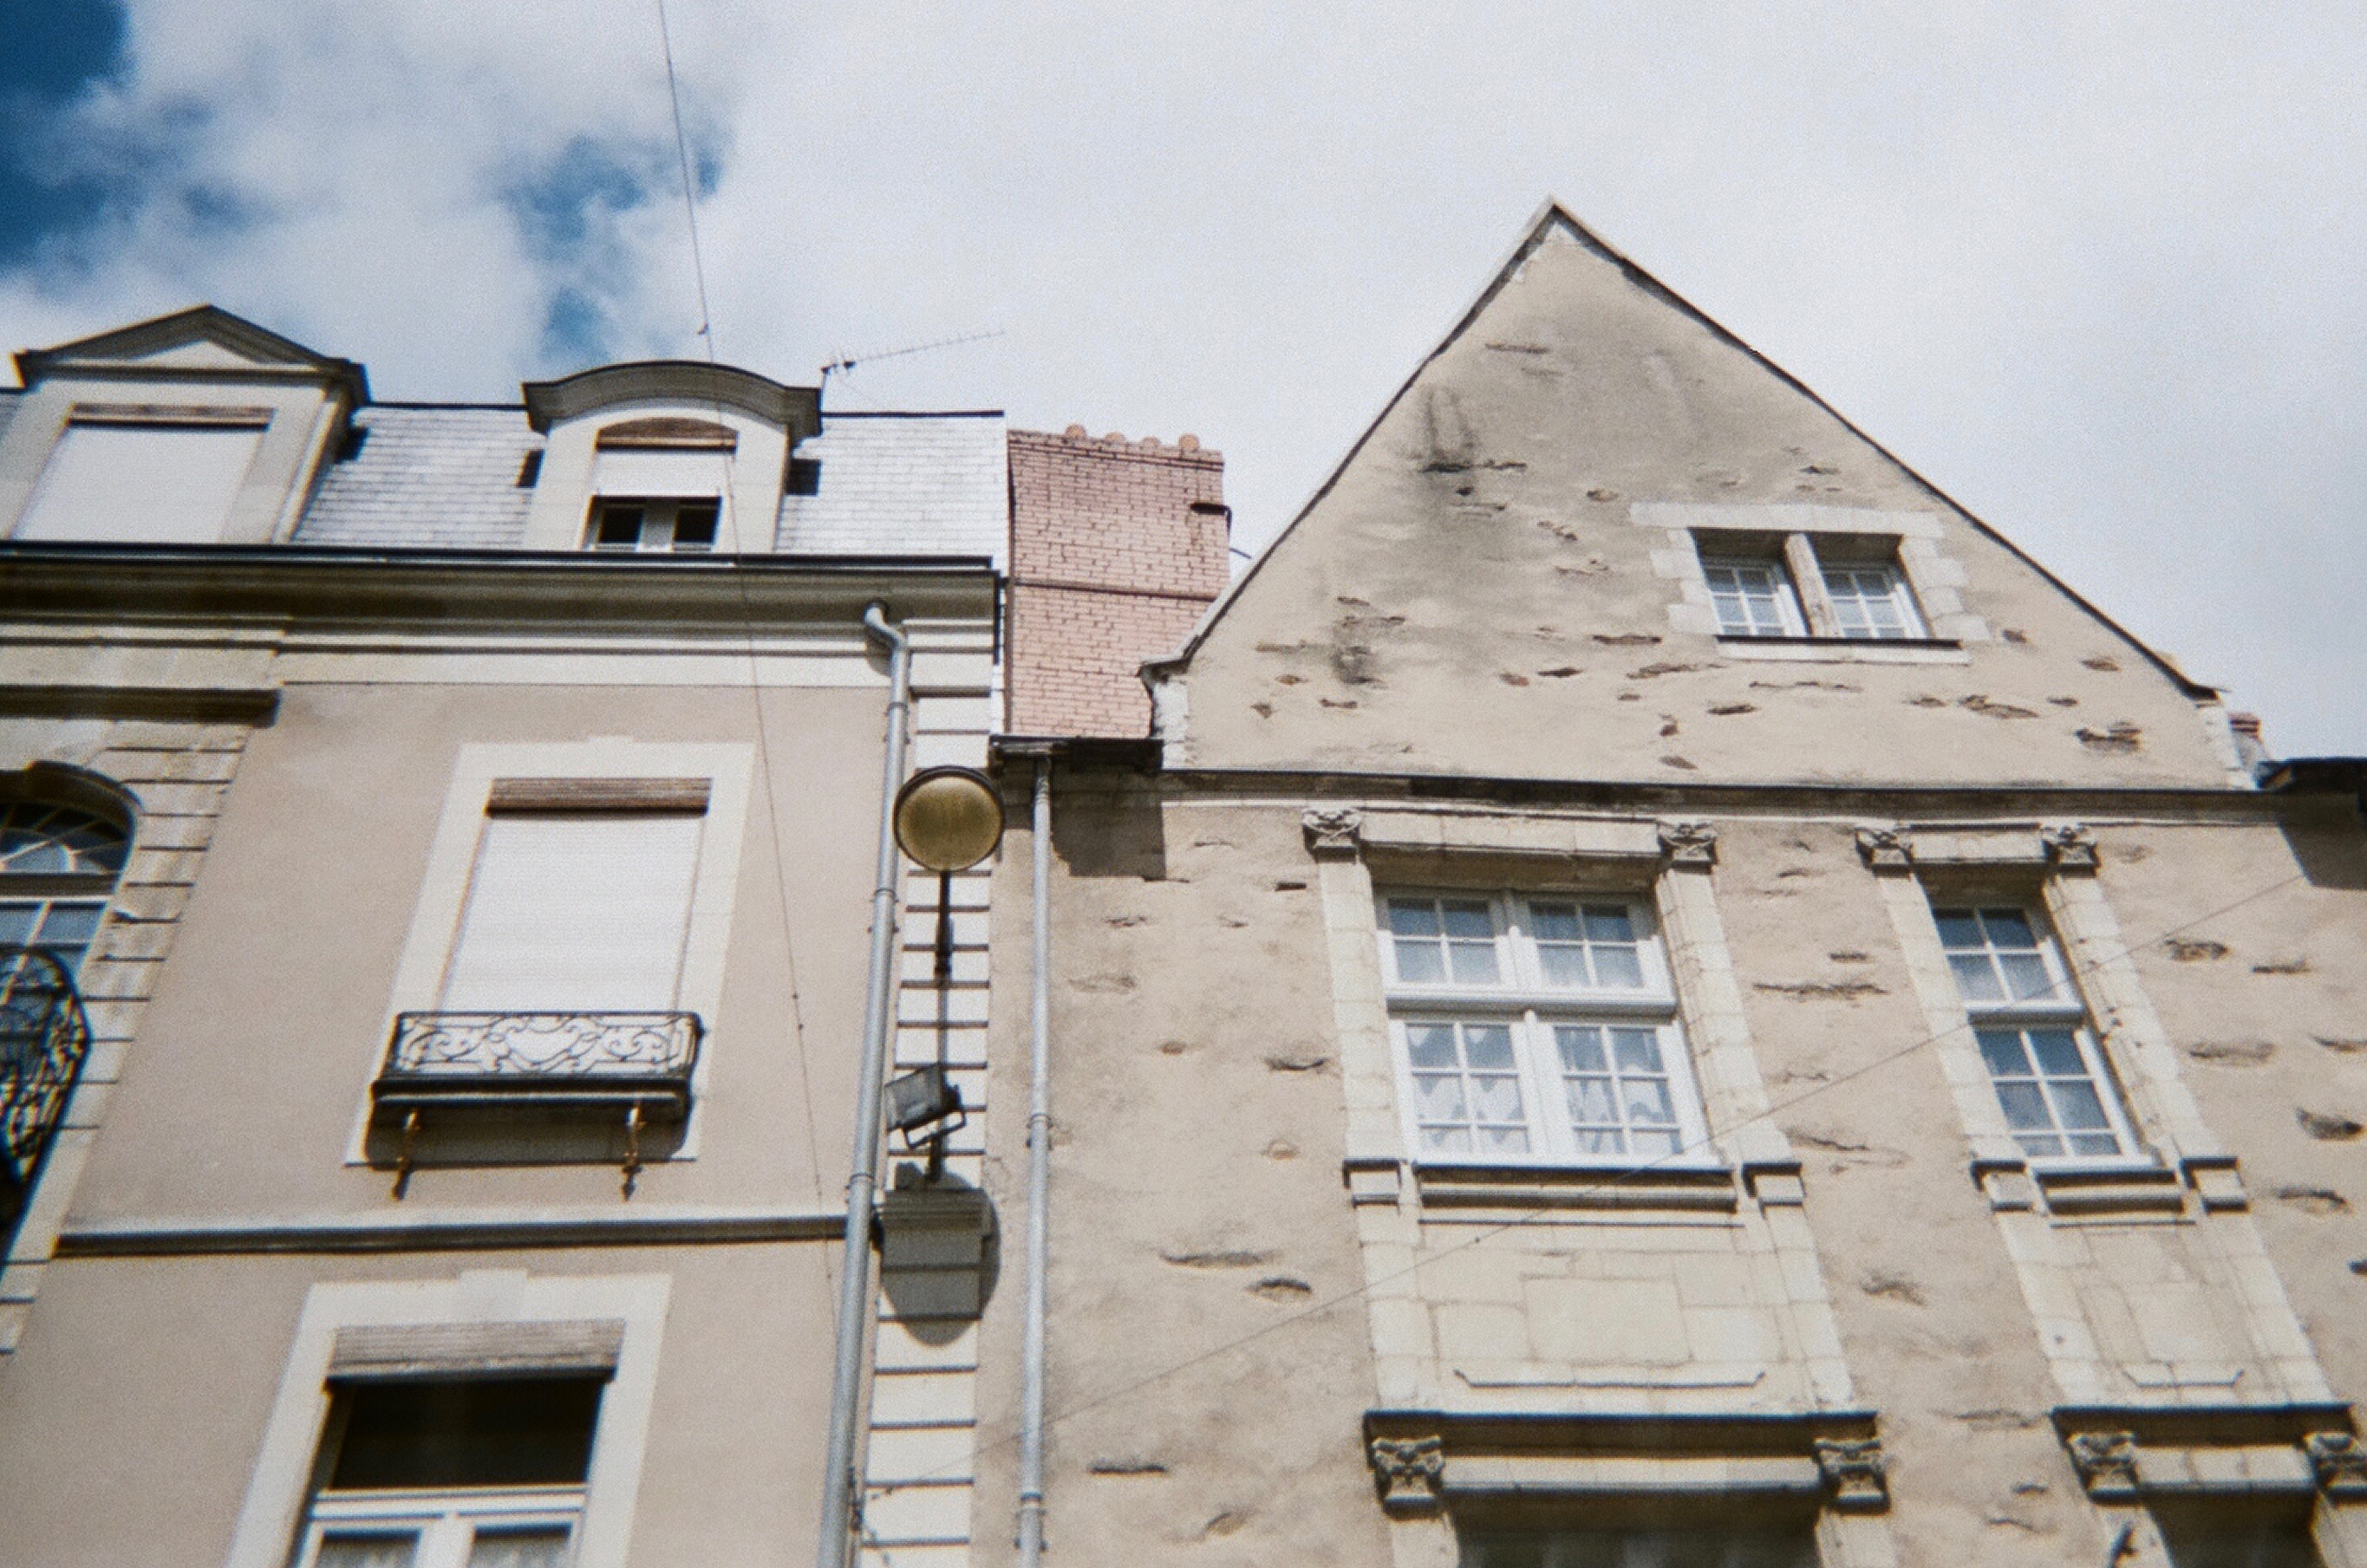 Angers, France on film